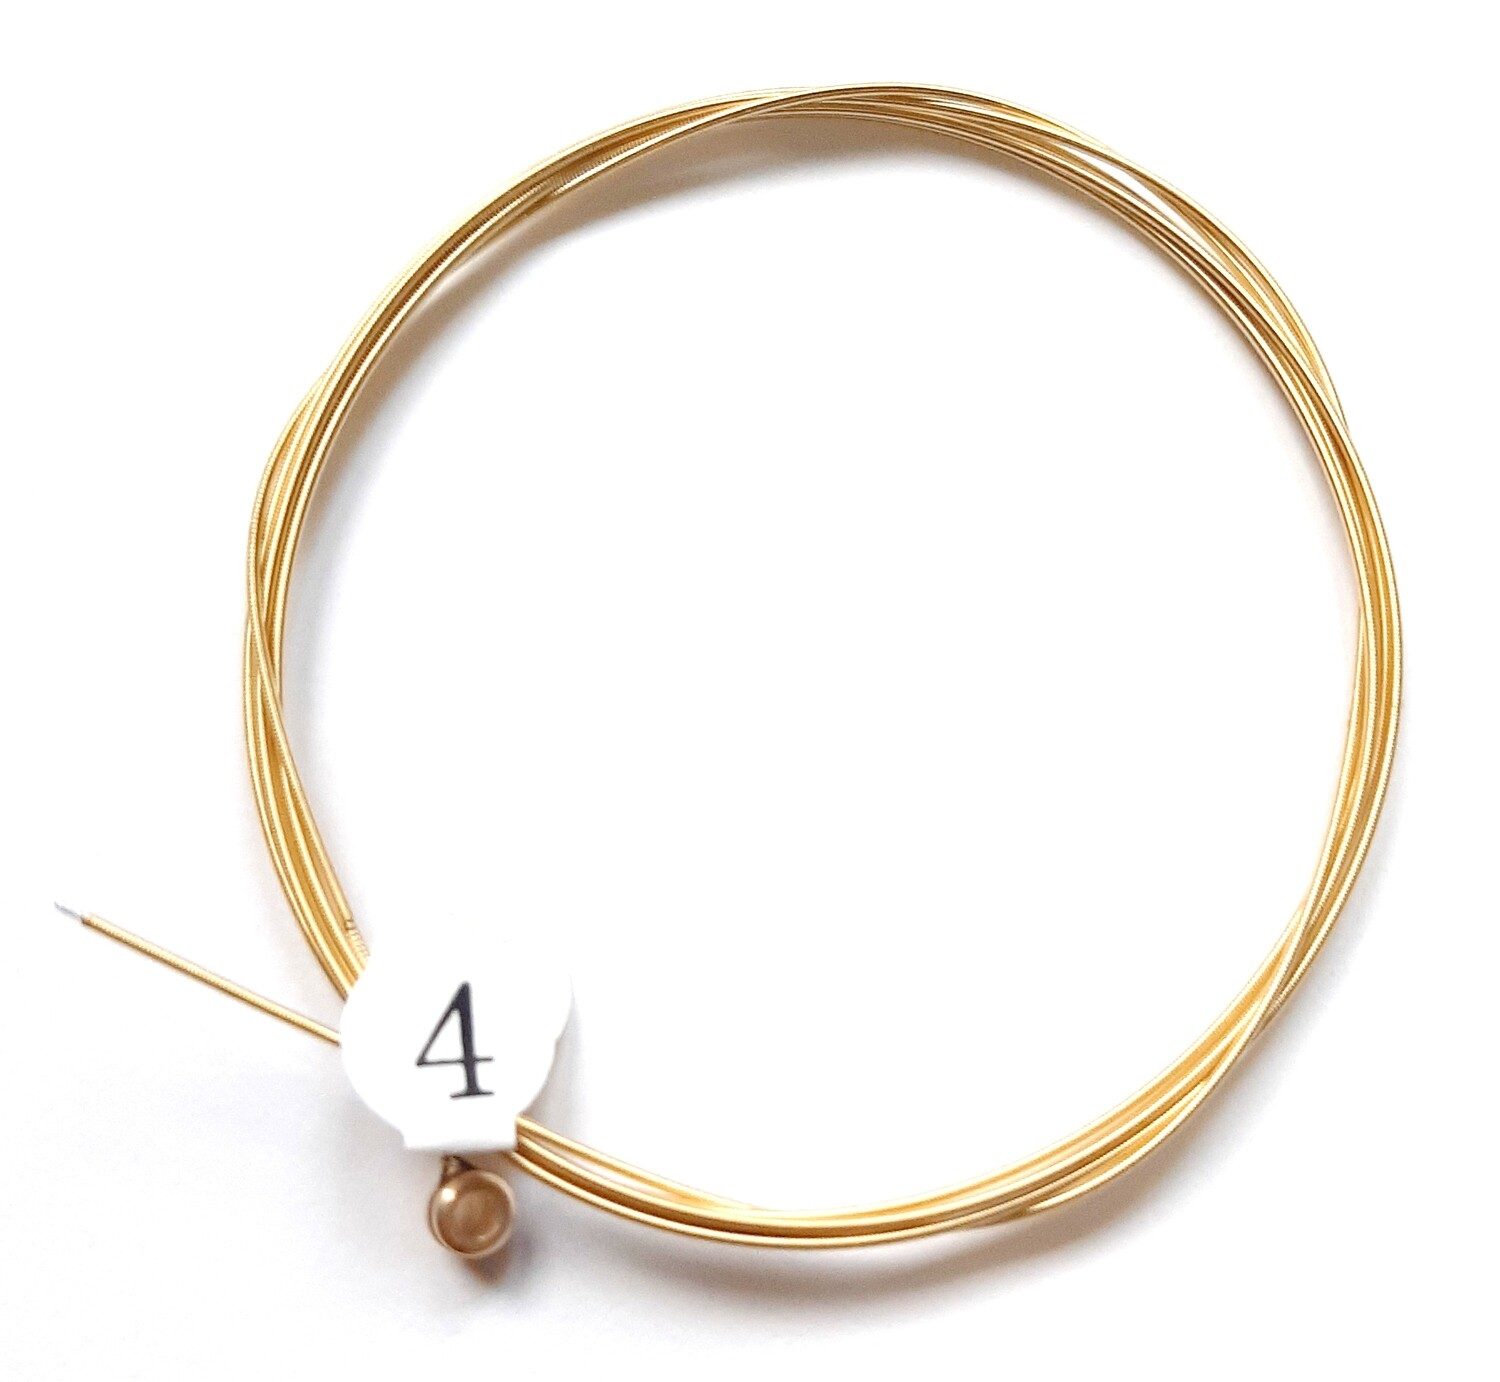 Single Acoustic Guitar String : 4th string : 5 pcs